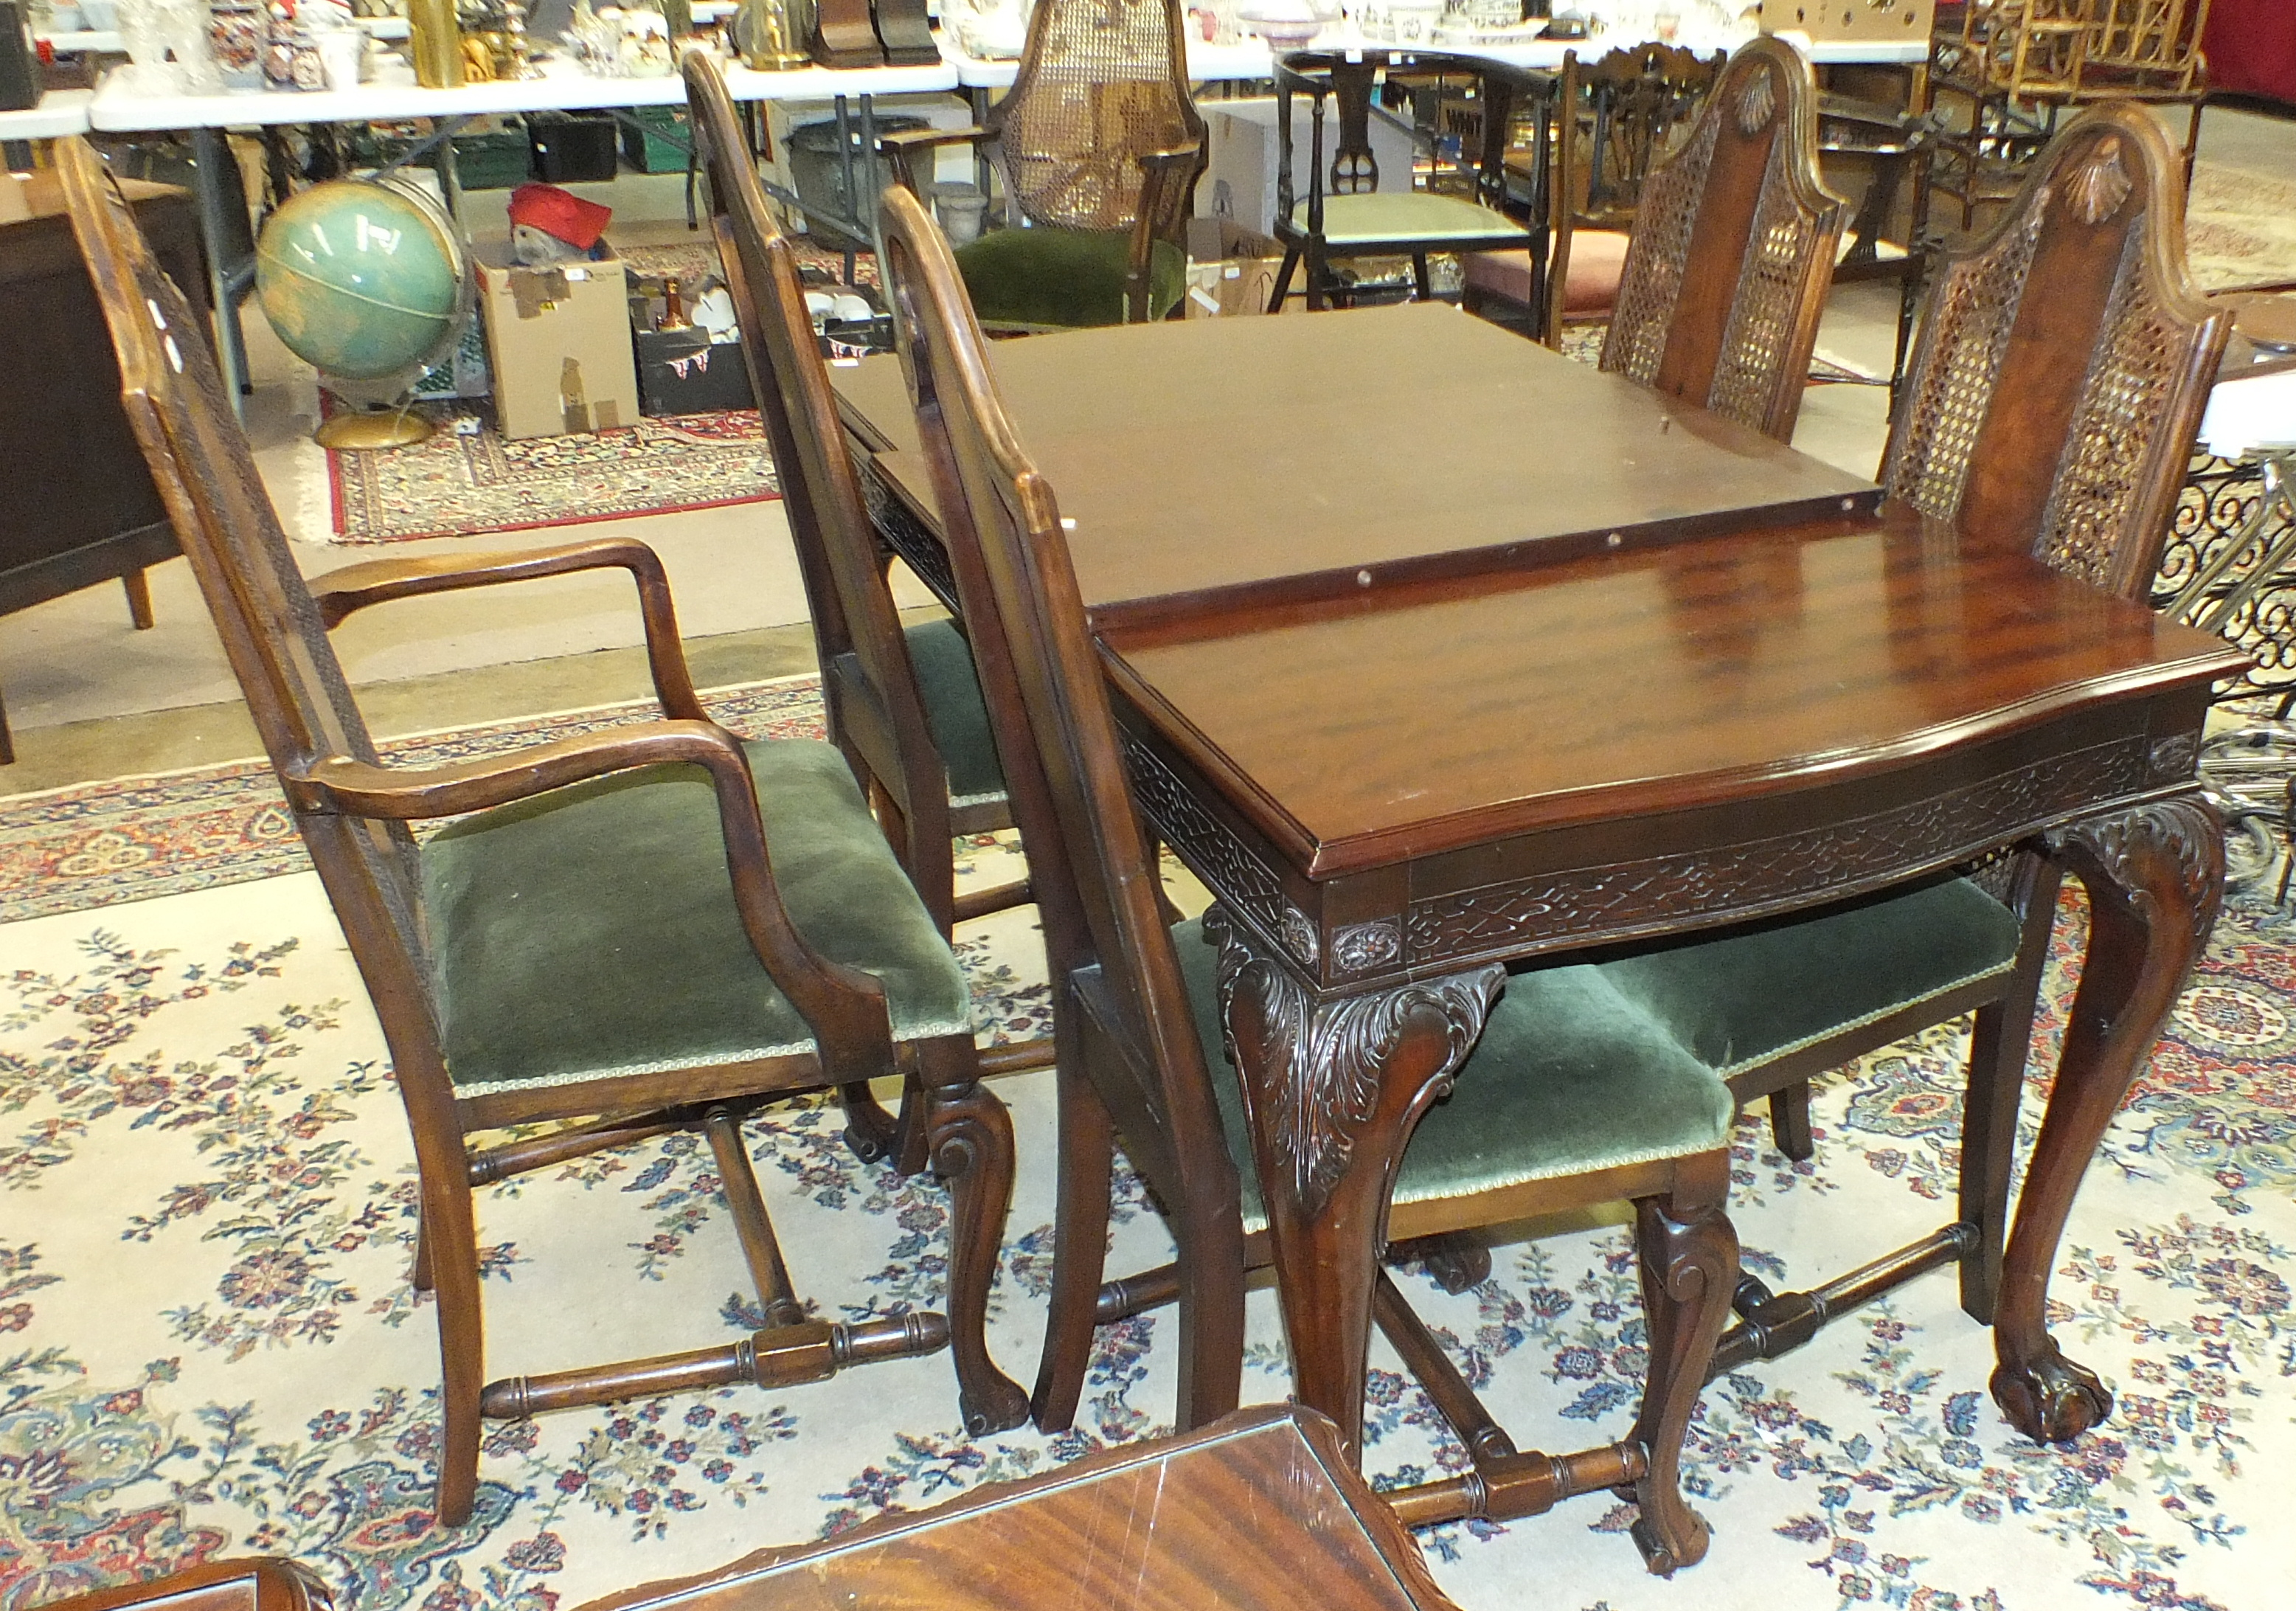 Lot 42 - A set of five late-20th century walnut finish dining chairs with carved backs and upholstered seats,